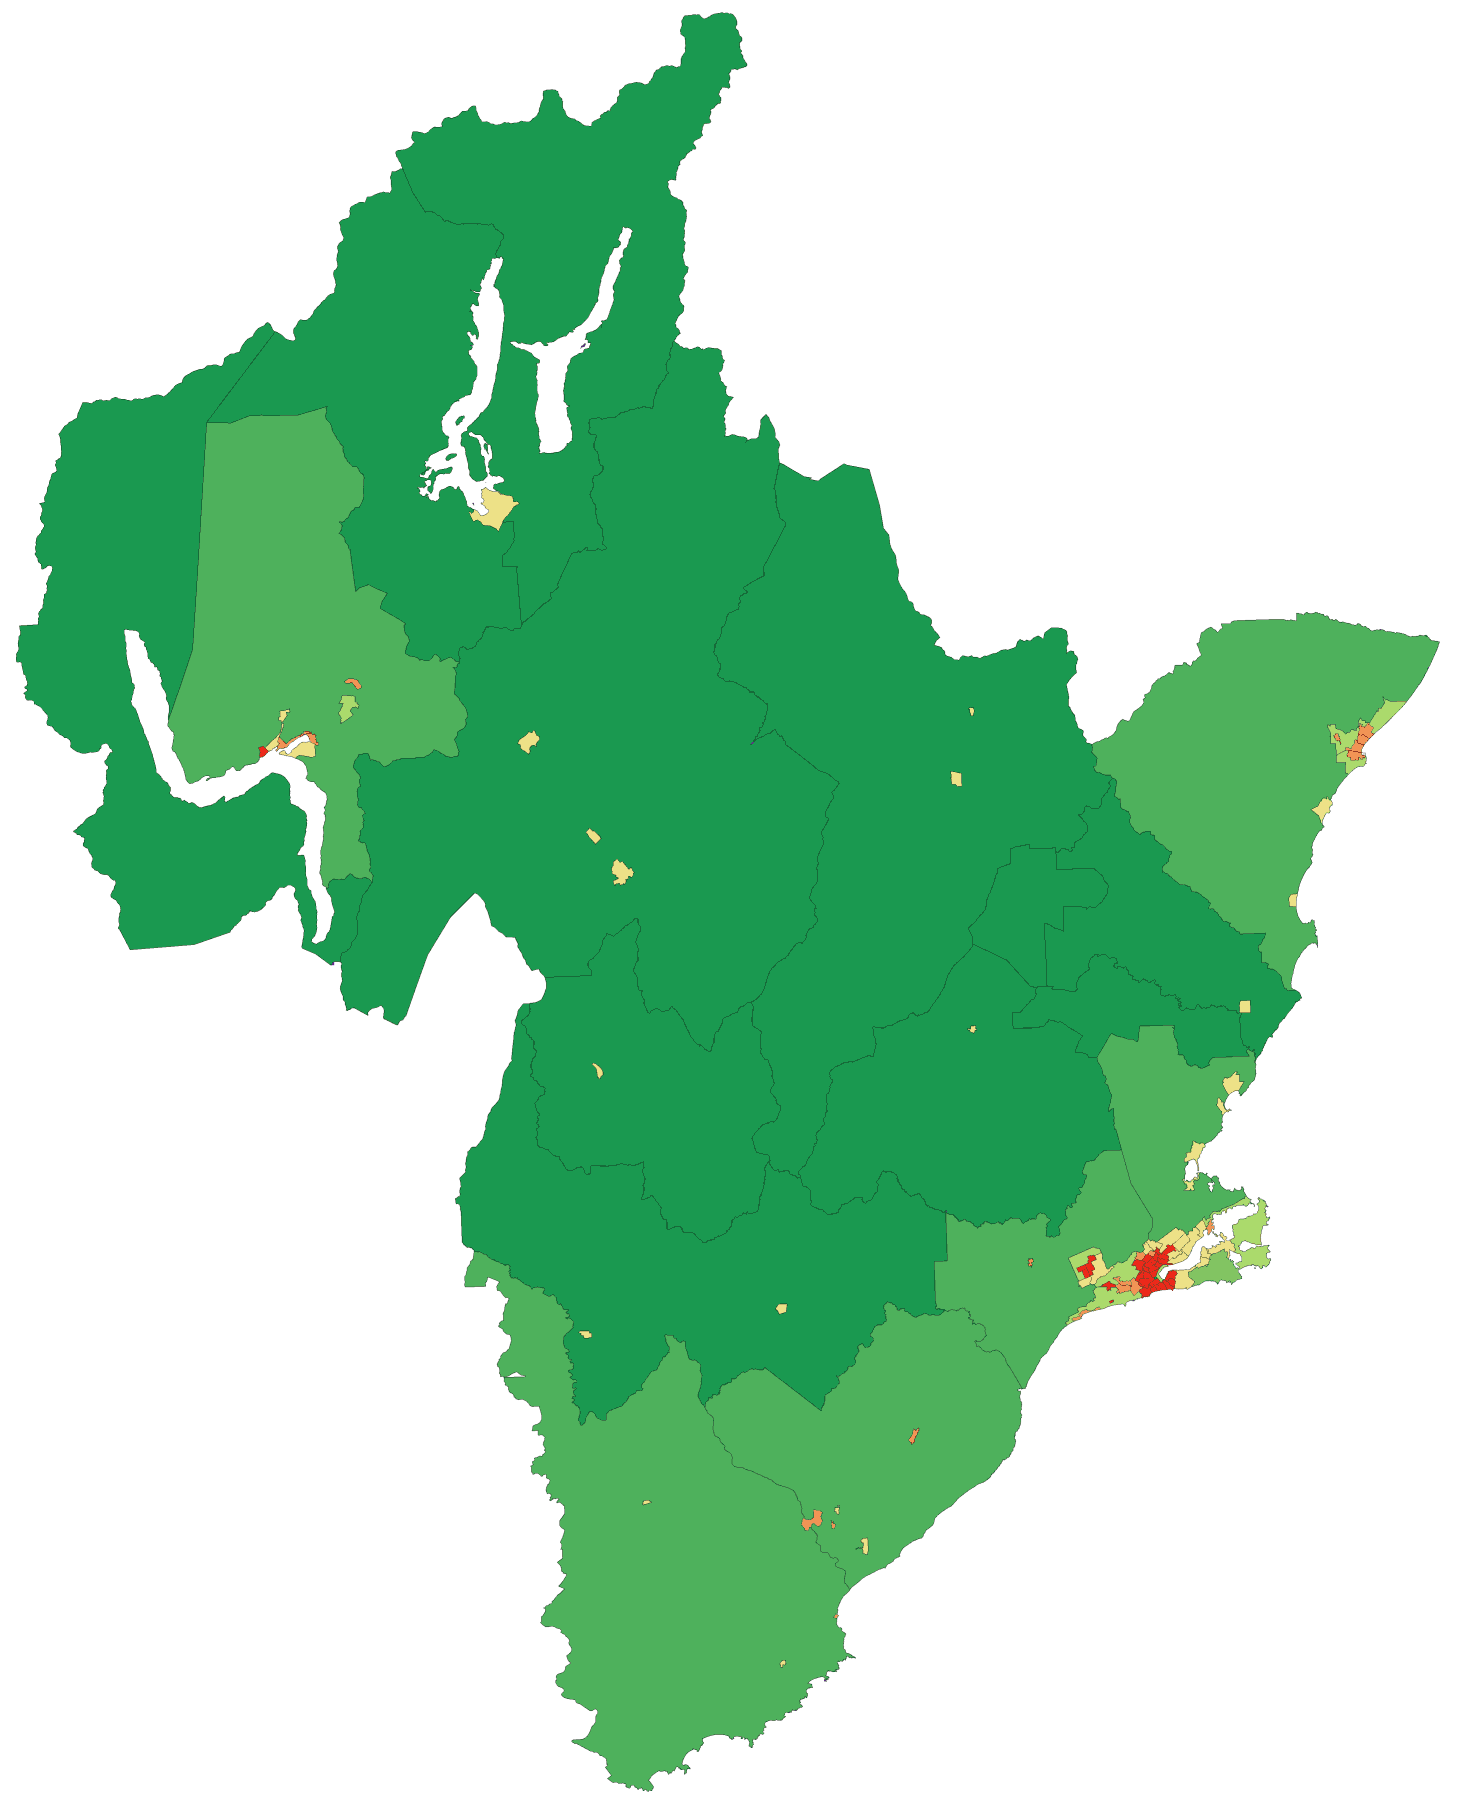 Otagoregionpopulationdensity